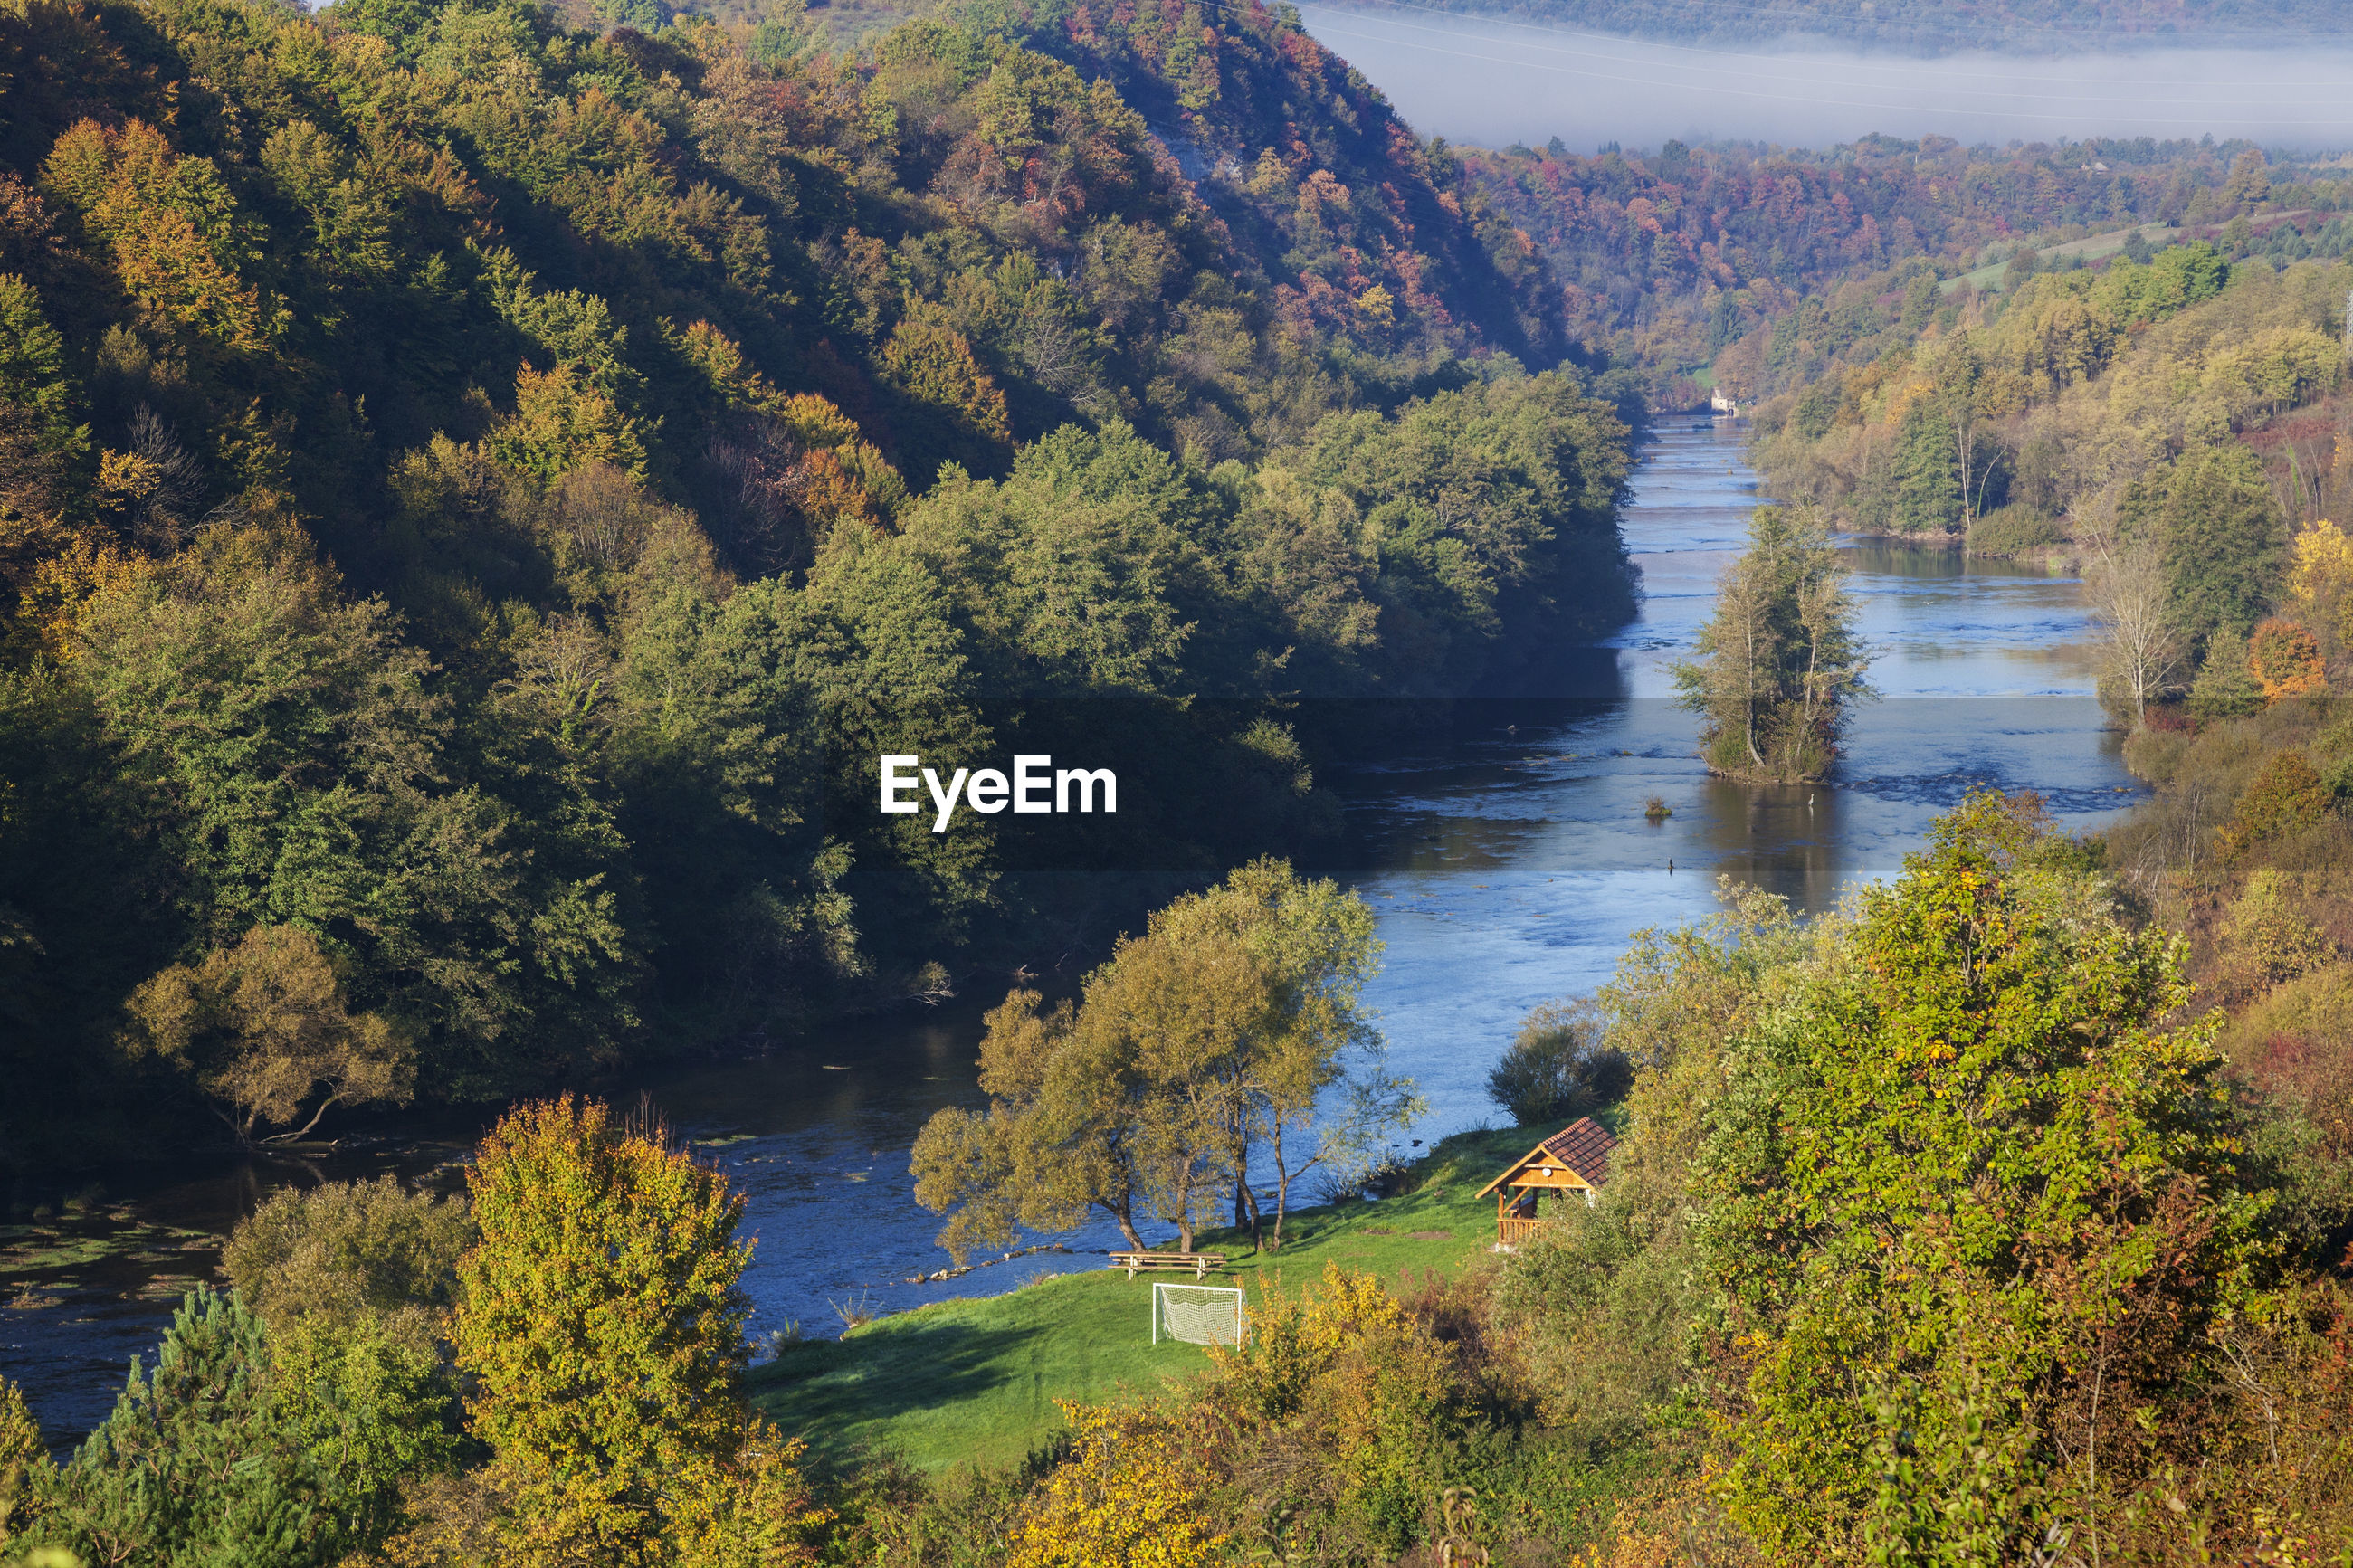 High angle view of lake amidst trees in forest during autumn